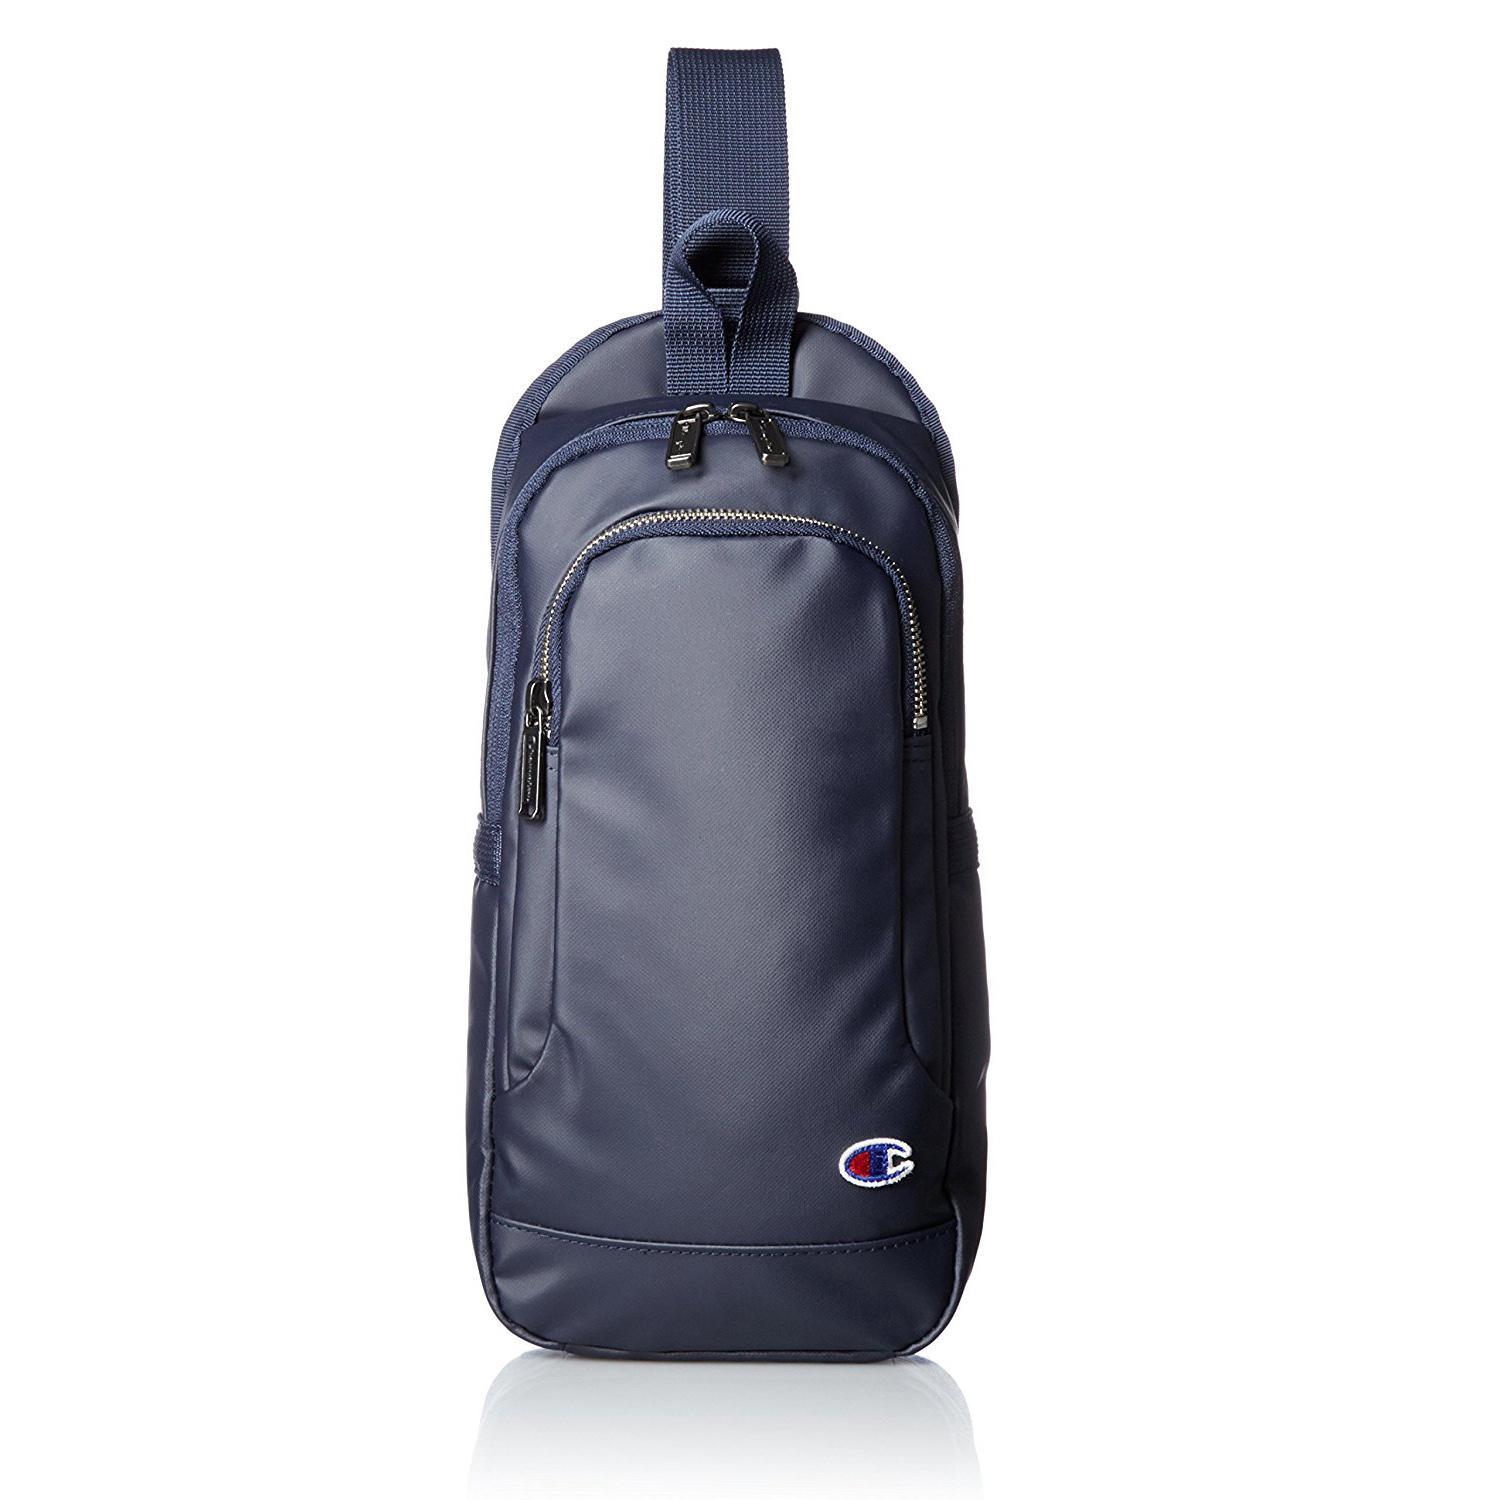 Gss Champion Water Repellent Cross Body Bag Sling